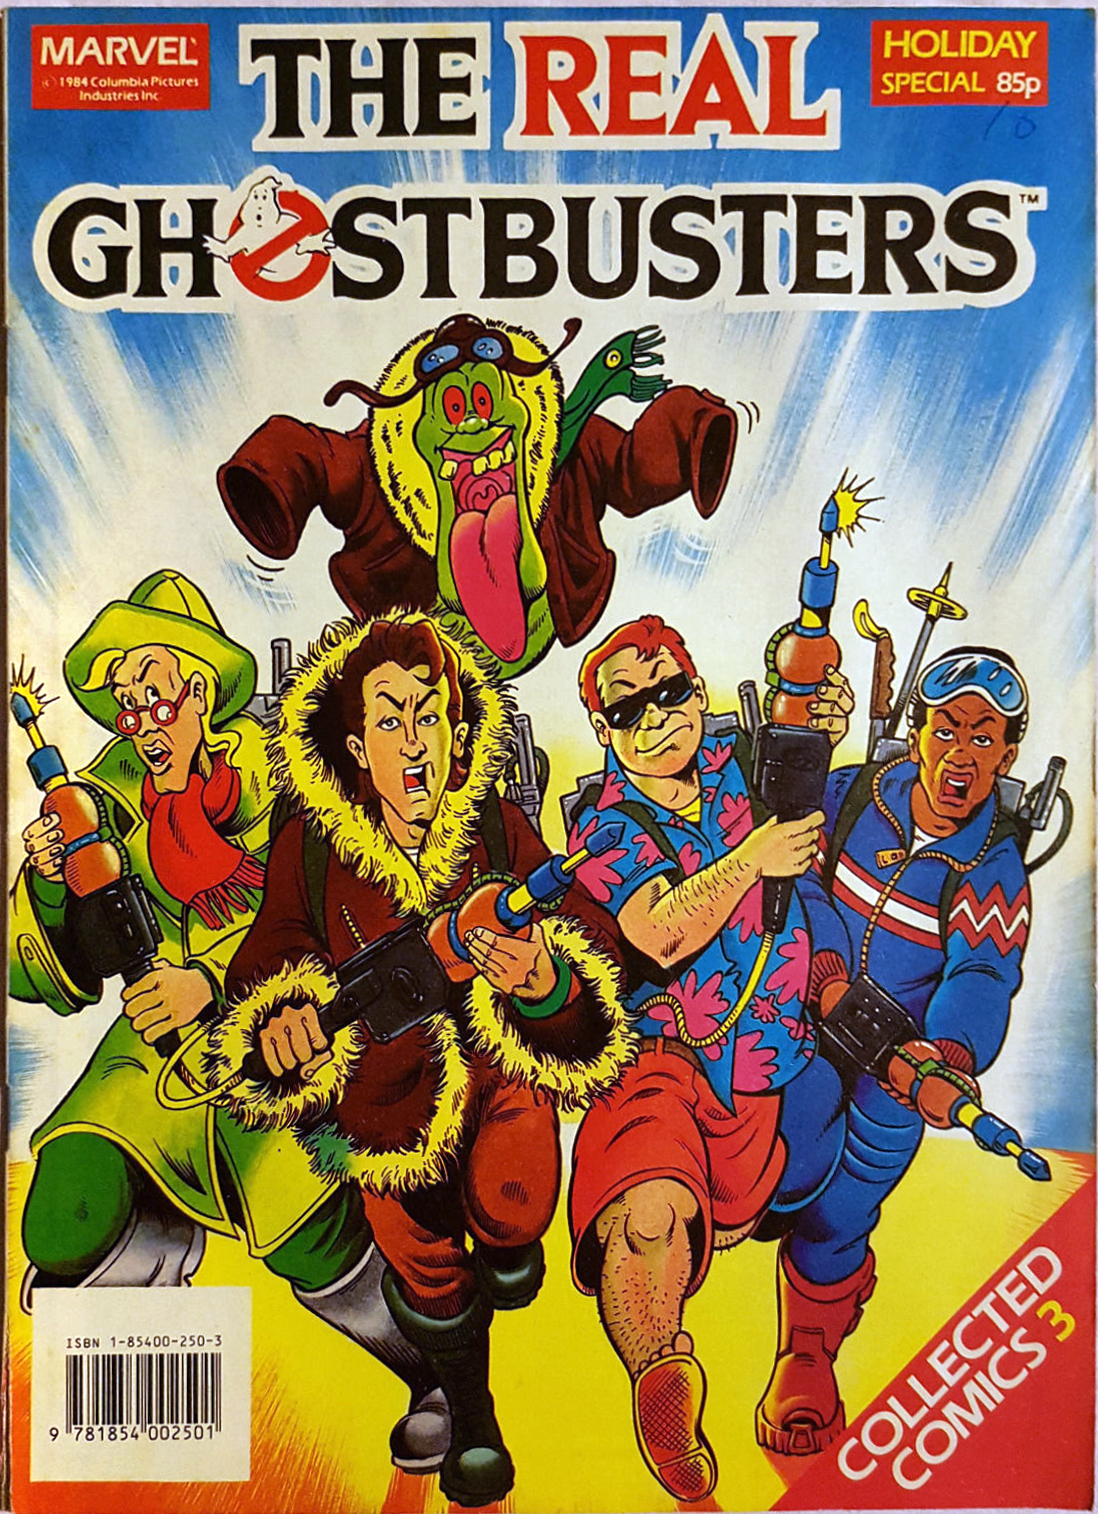 Marvel Comics Ltd- The Real Ghostbusters Collected Comics 03 Holiday Special